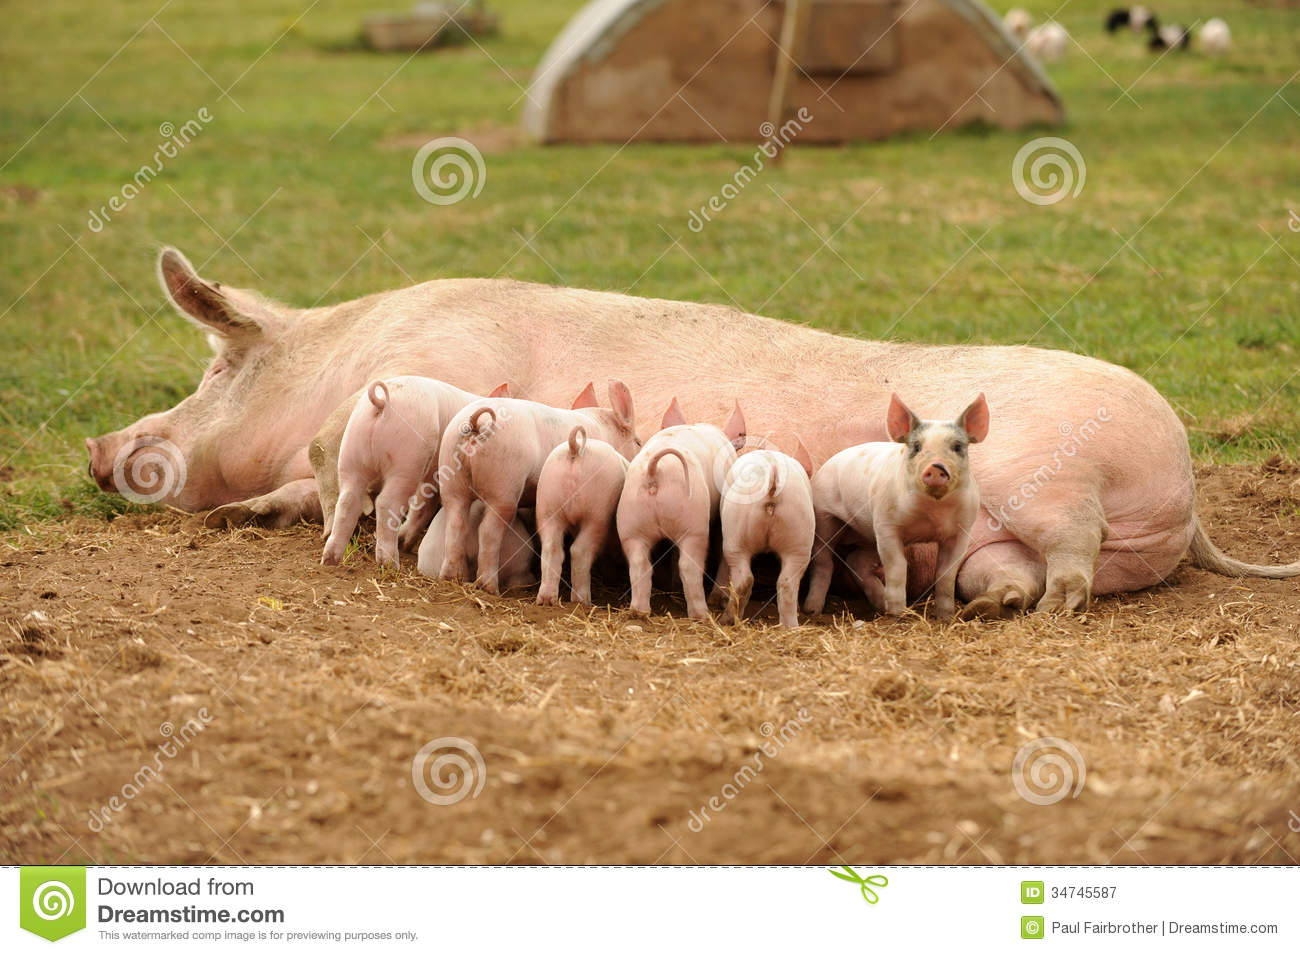 understanding the statement all men are pigs What does men are pigs mean does it mean men are dirty or men will screw anything in their paths follow like pigs, or men have no sense of manners it all boils down to the whether there is a literal or non-literal interpretation.